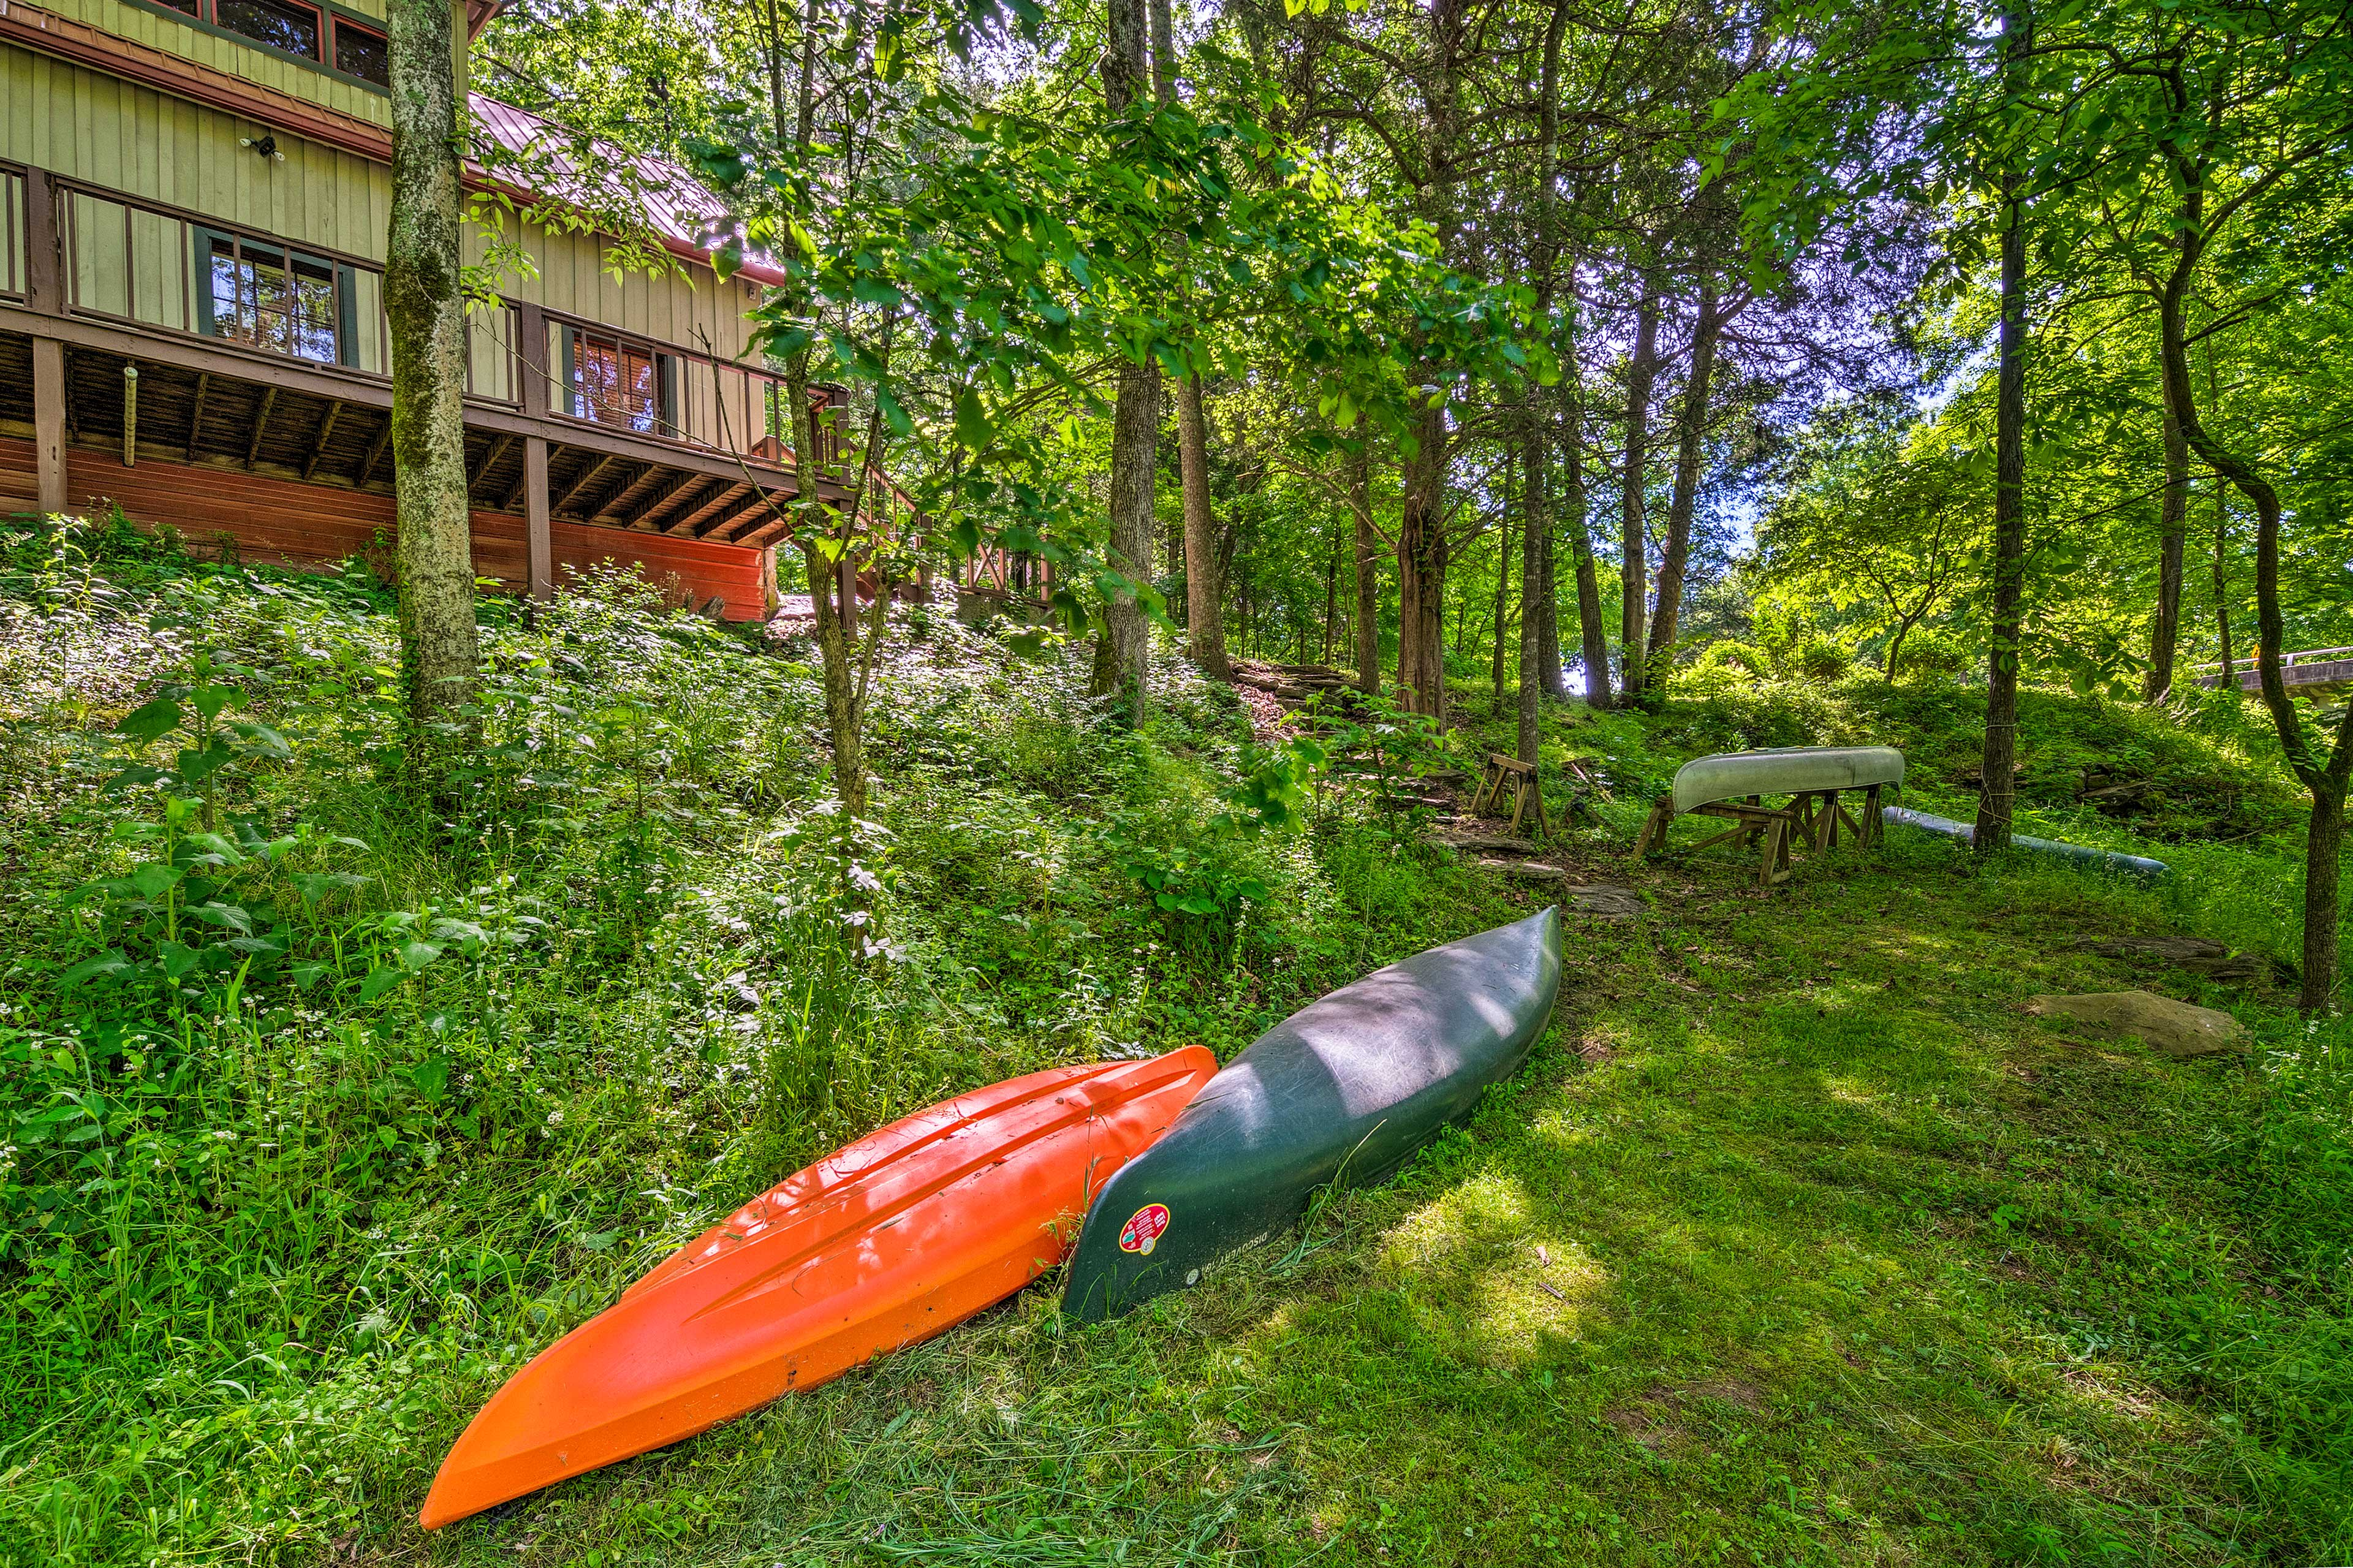 There are 2 kayaks and 2 canoes provided so you can explore the property creek.